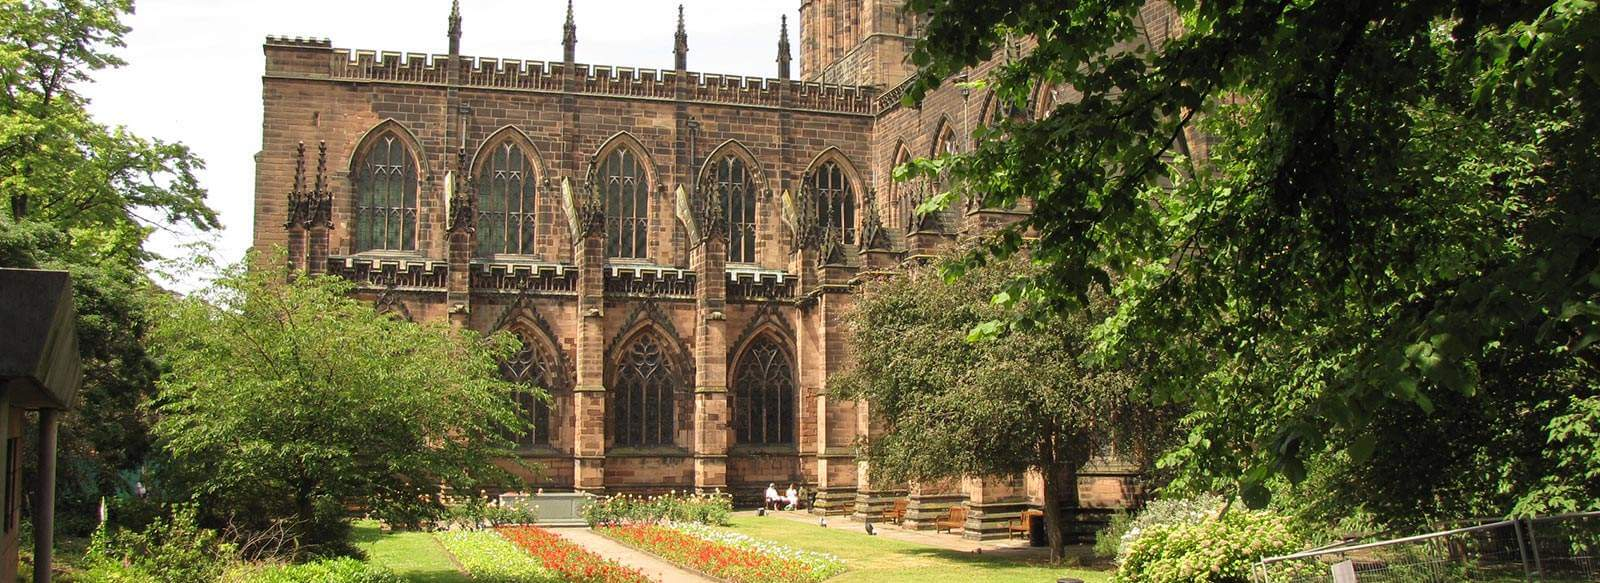 Chester tourist information